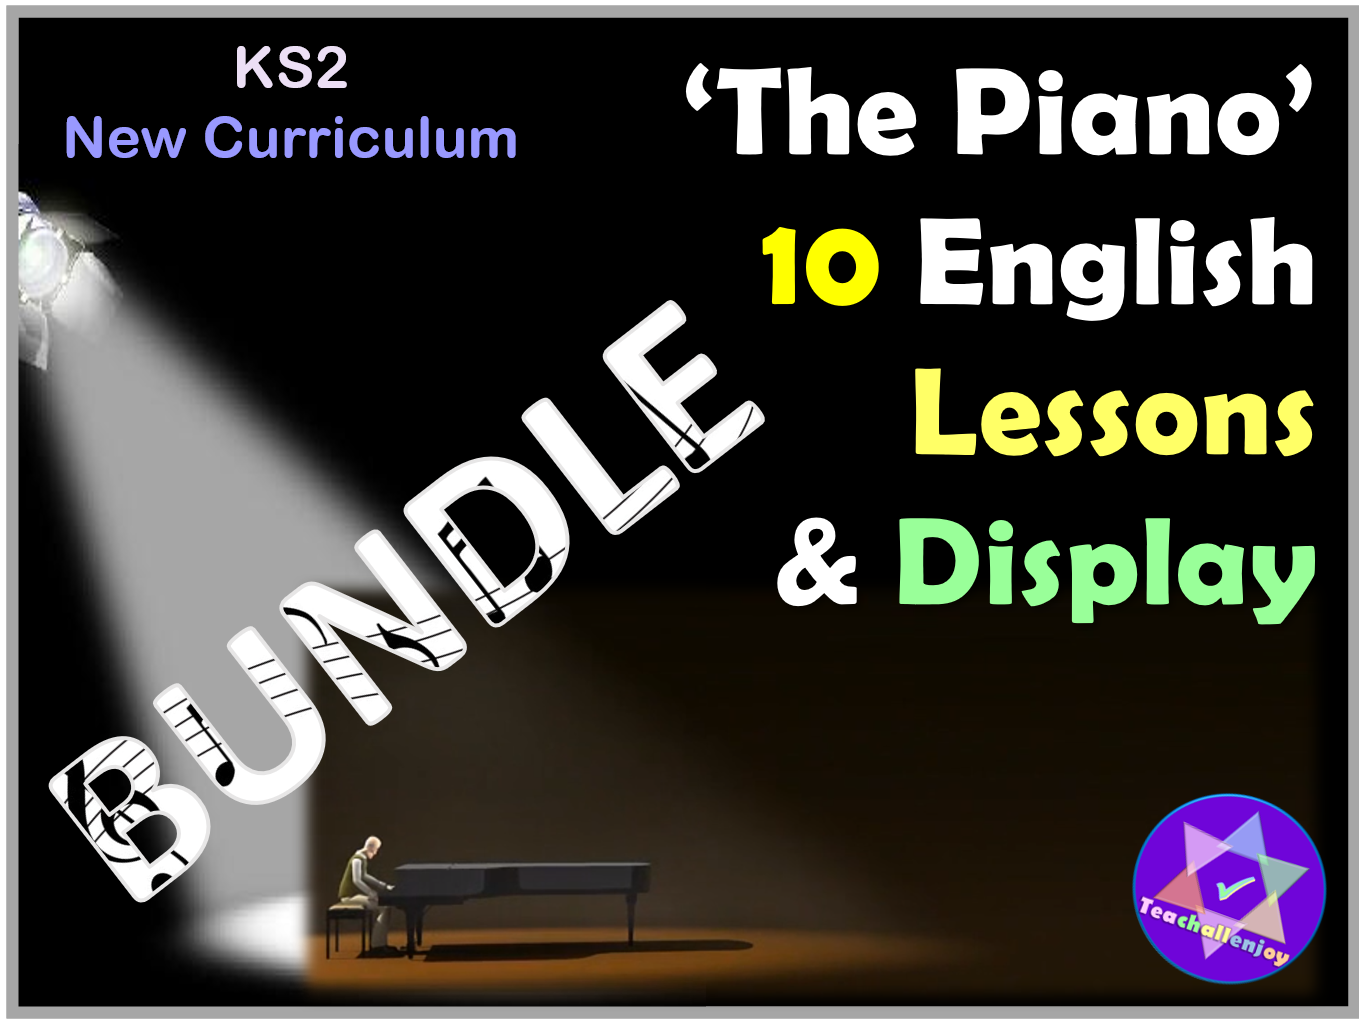 'The Piano' 2 Weeks English Lessons Plans Resources Display